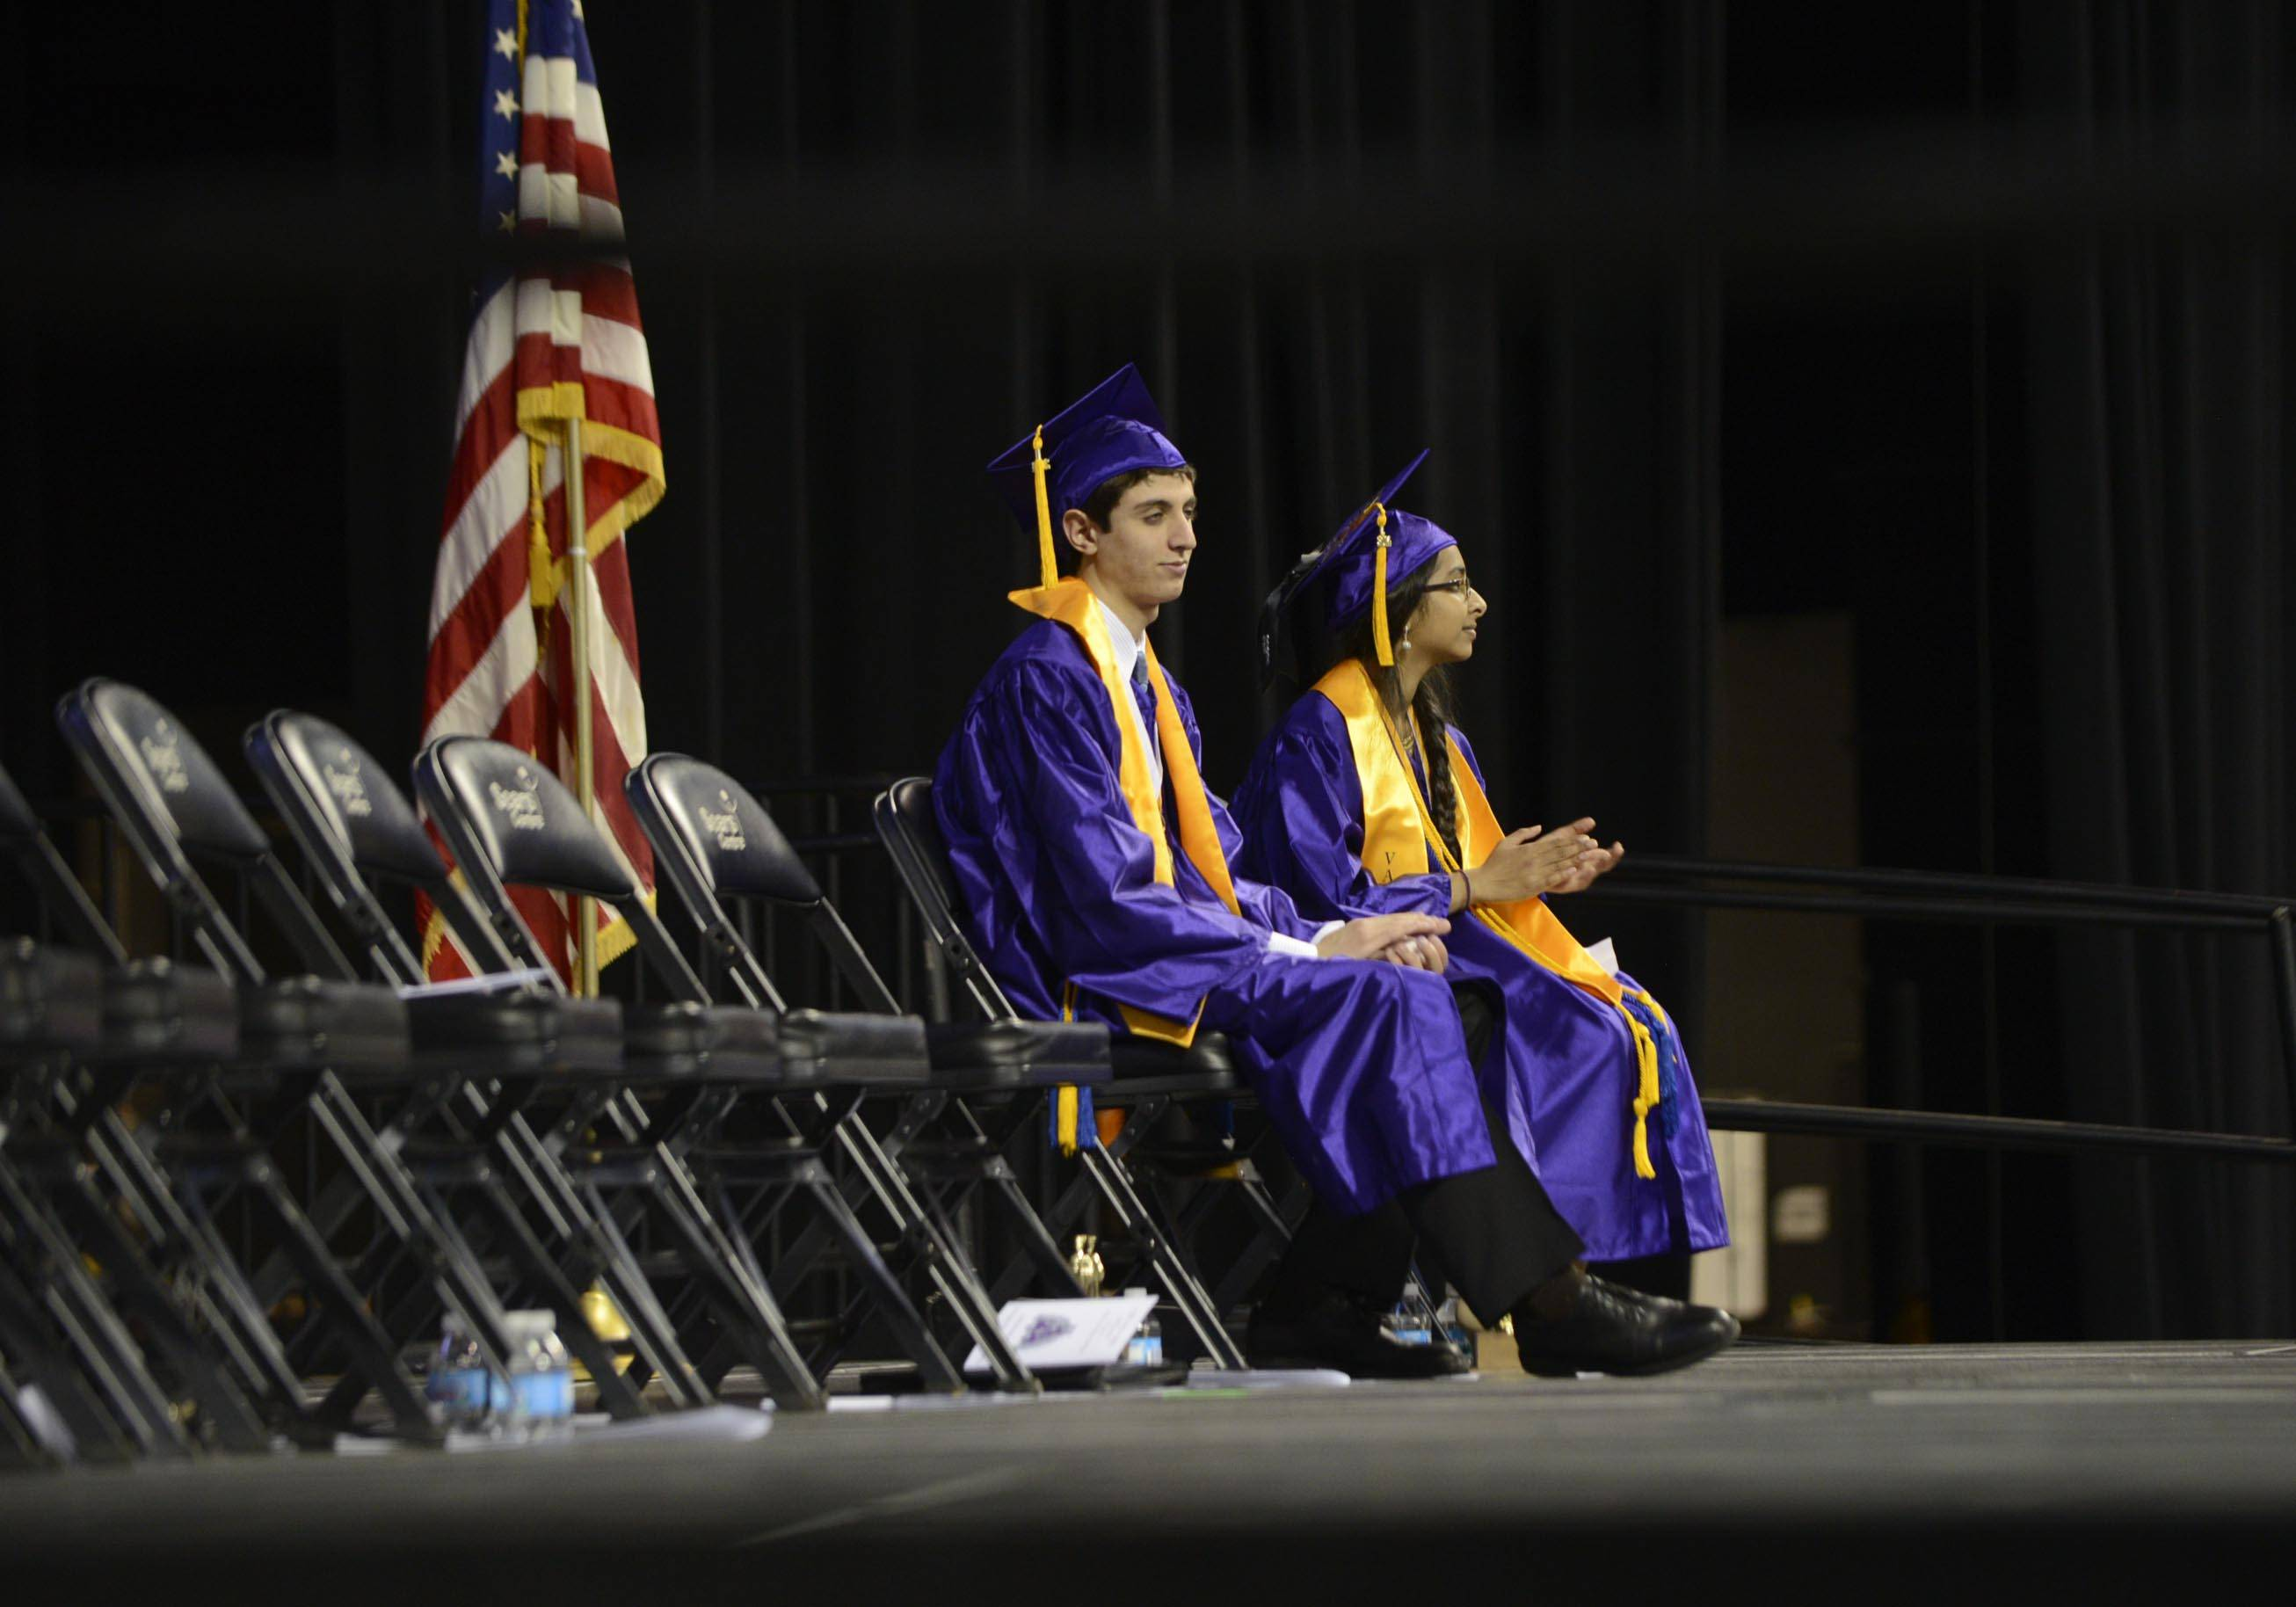 Salutatorian Mohammad Rashed and Valedictorian Shruti Kansara sit alone on stage as their classmates receive their diplomas Saturday at the Hampshire High School 2014 Commencement at the Sears Center in Hoffman Estates.